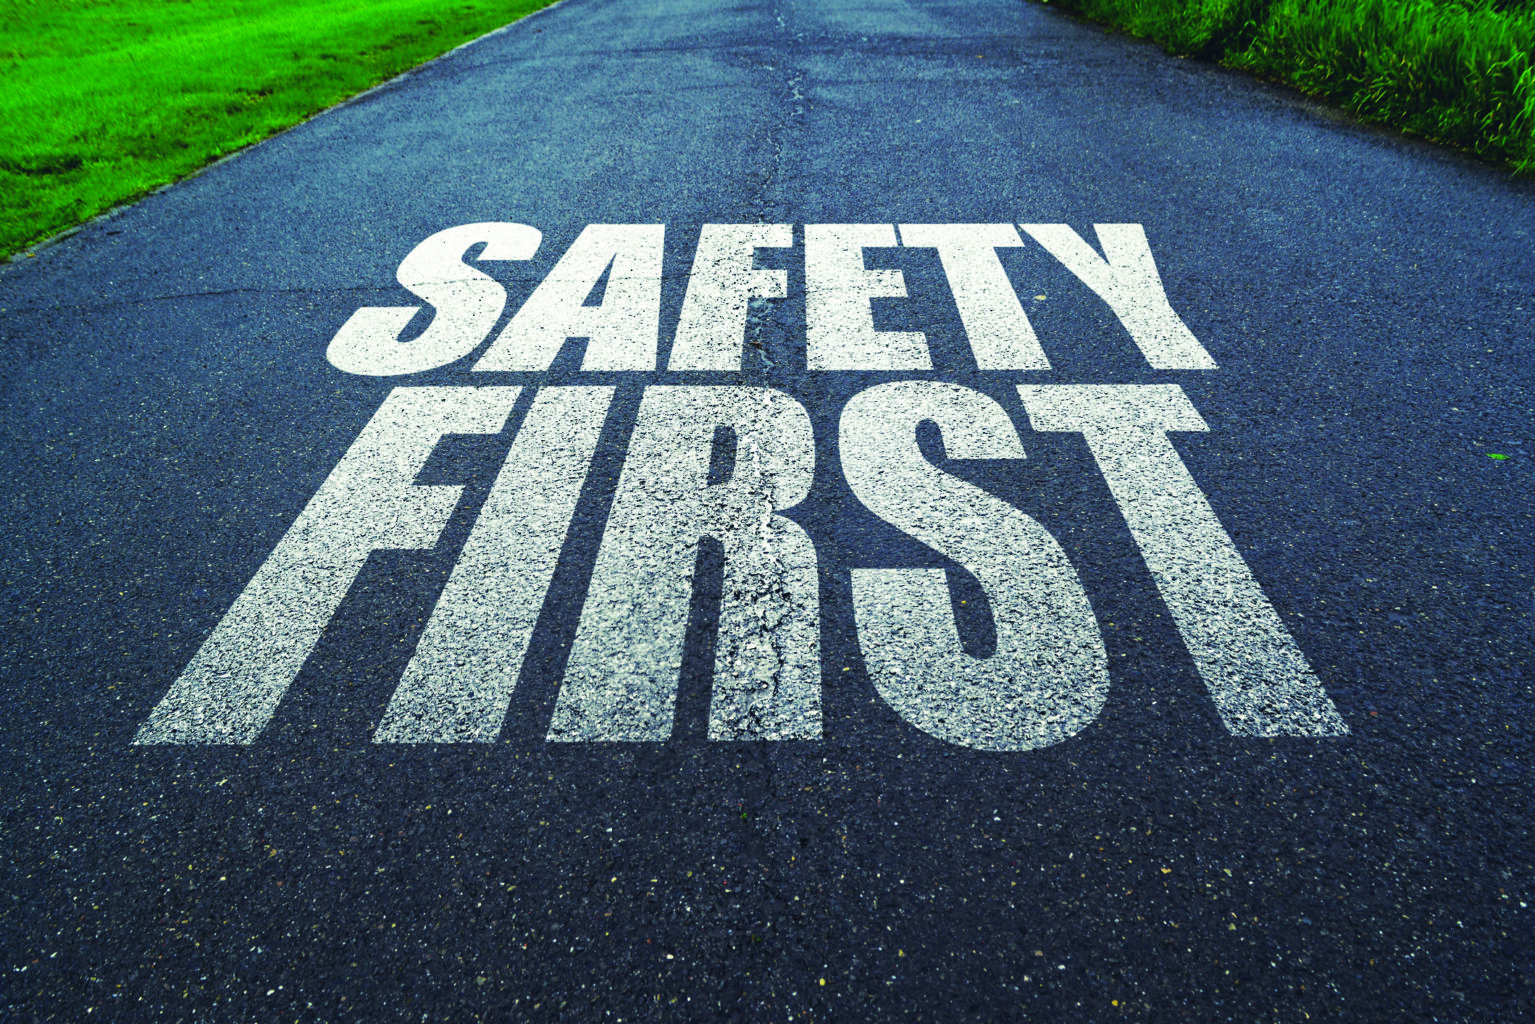 Safety first, message on the road. Concept of safe driving and preventing traffic accident.